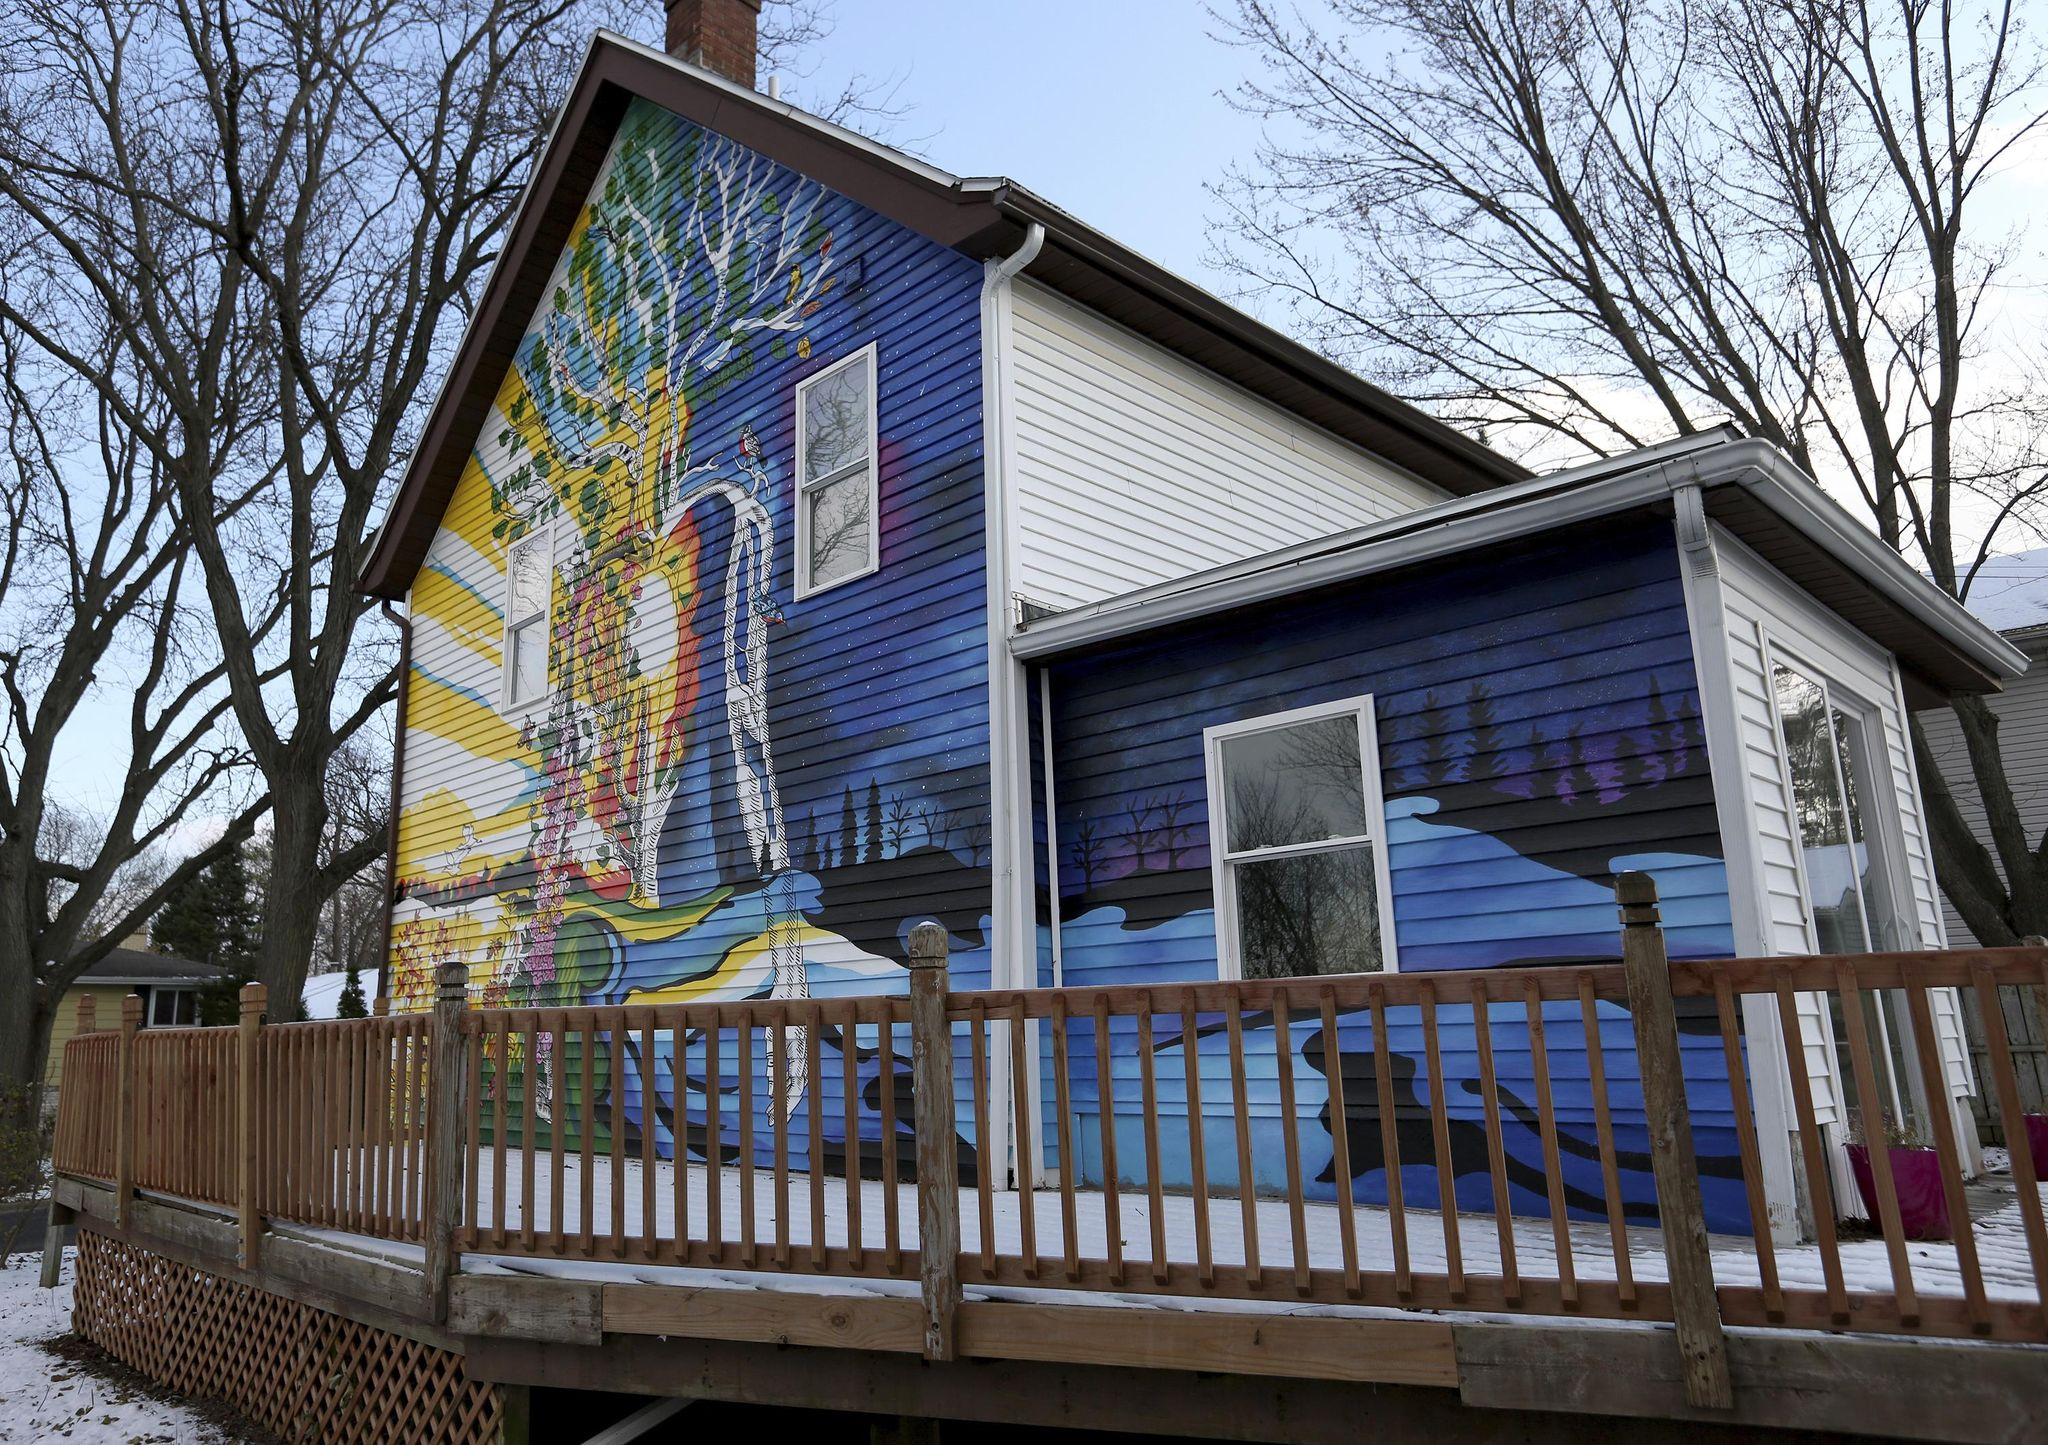 Wisconsin woman hires artist to paint mural on her house